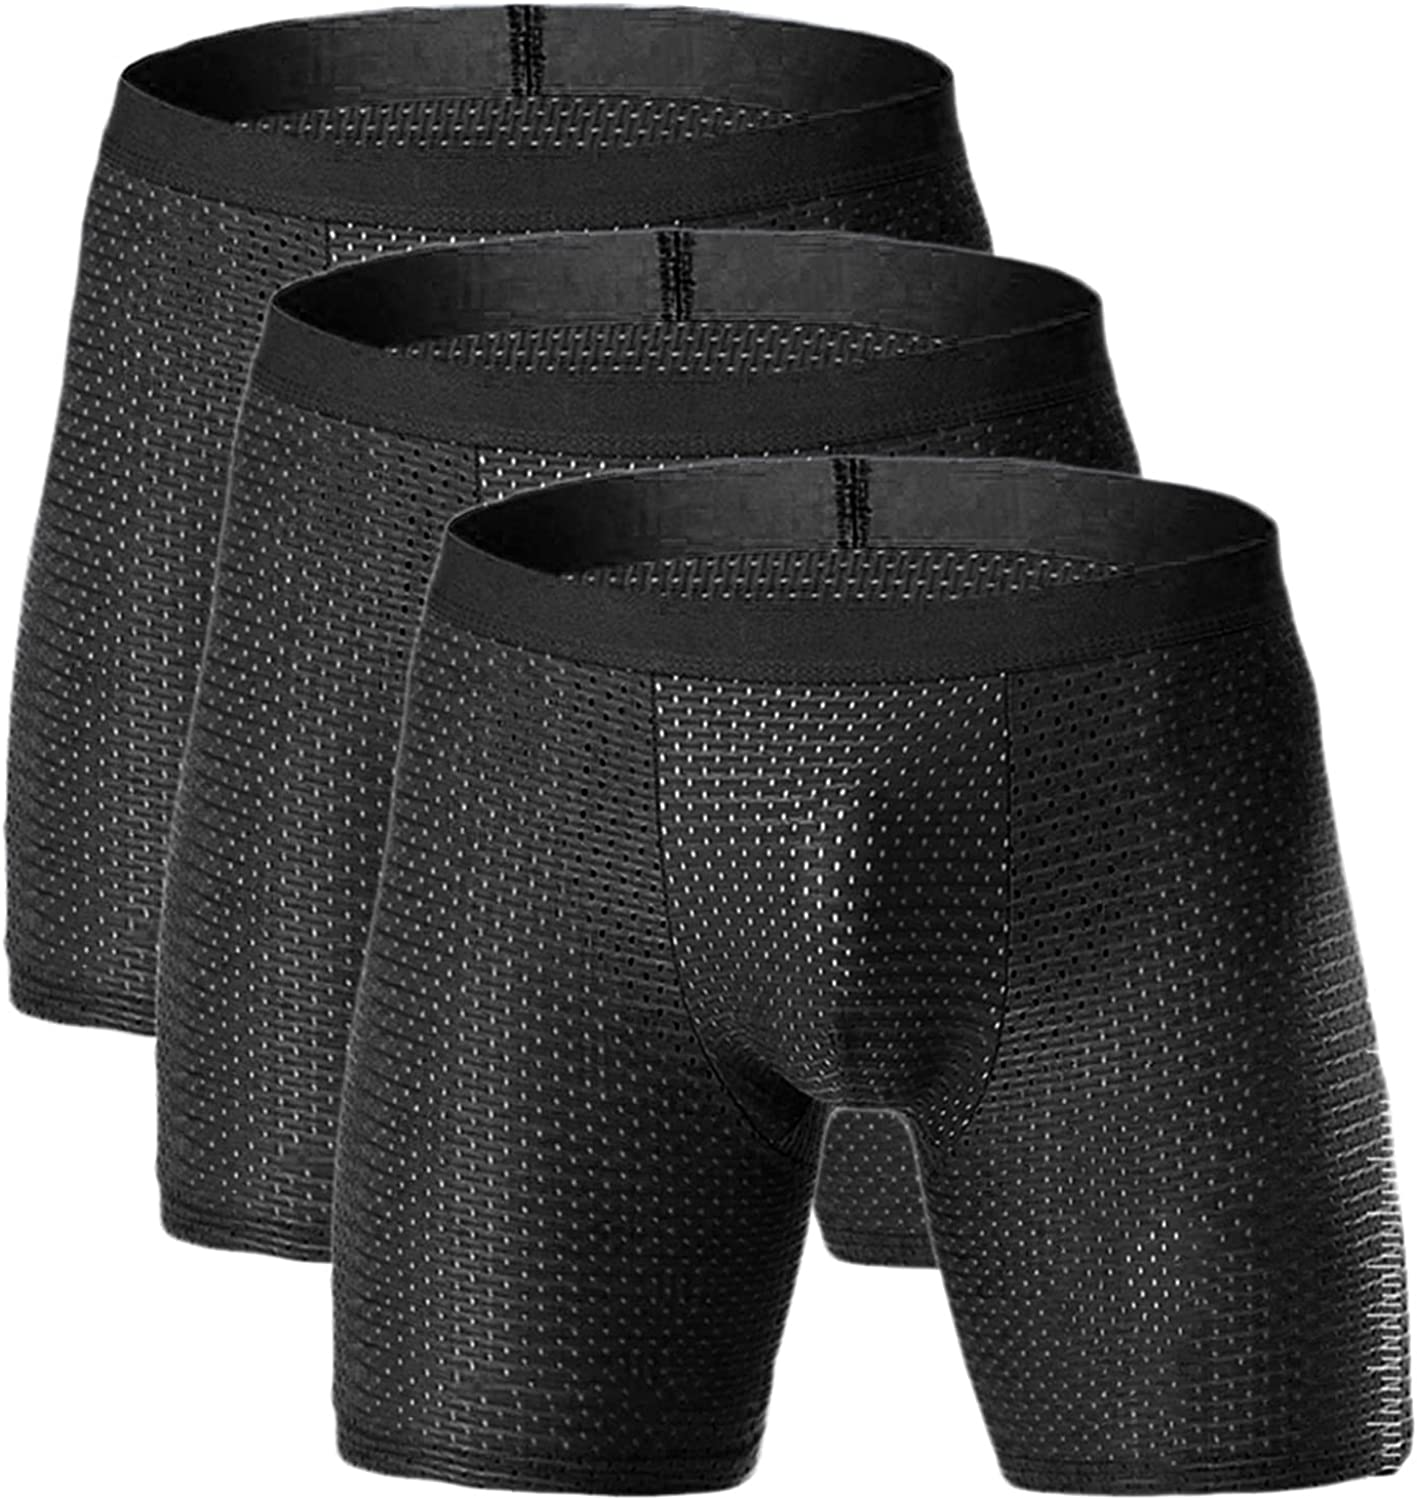 Andongnywell Men's Underwear Boxer Briefs Pack Soft Breathable Underpants Trunks quick-drying panties 3 Pack